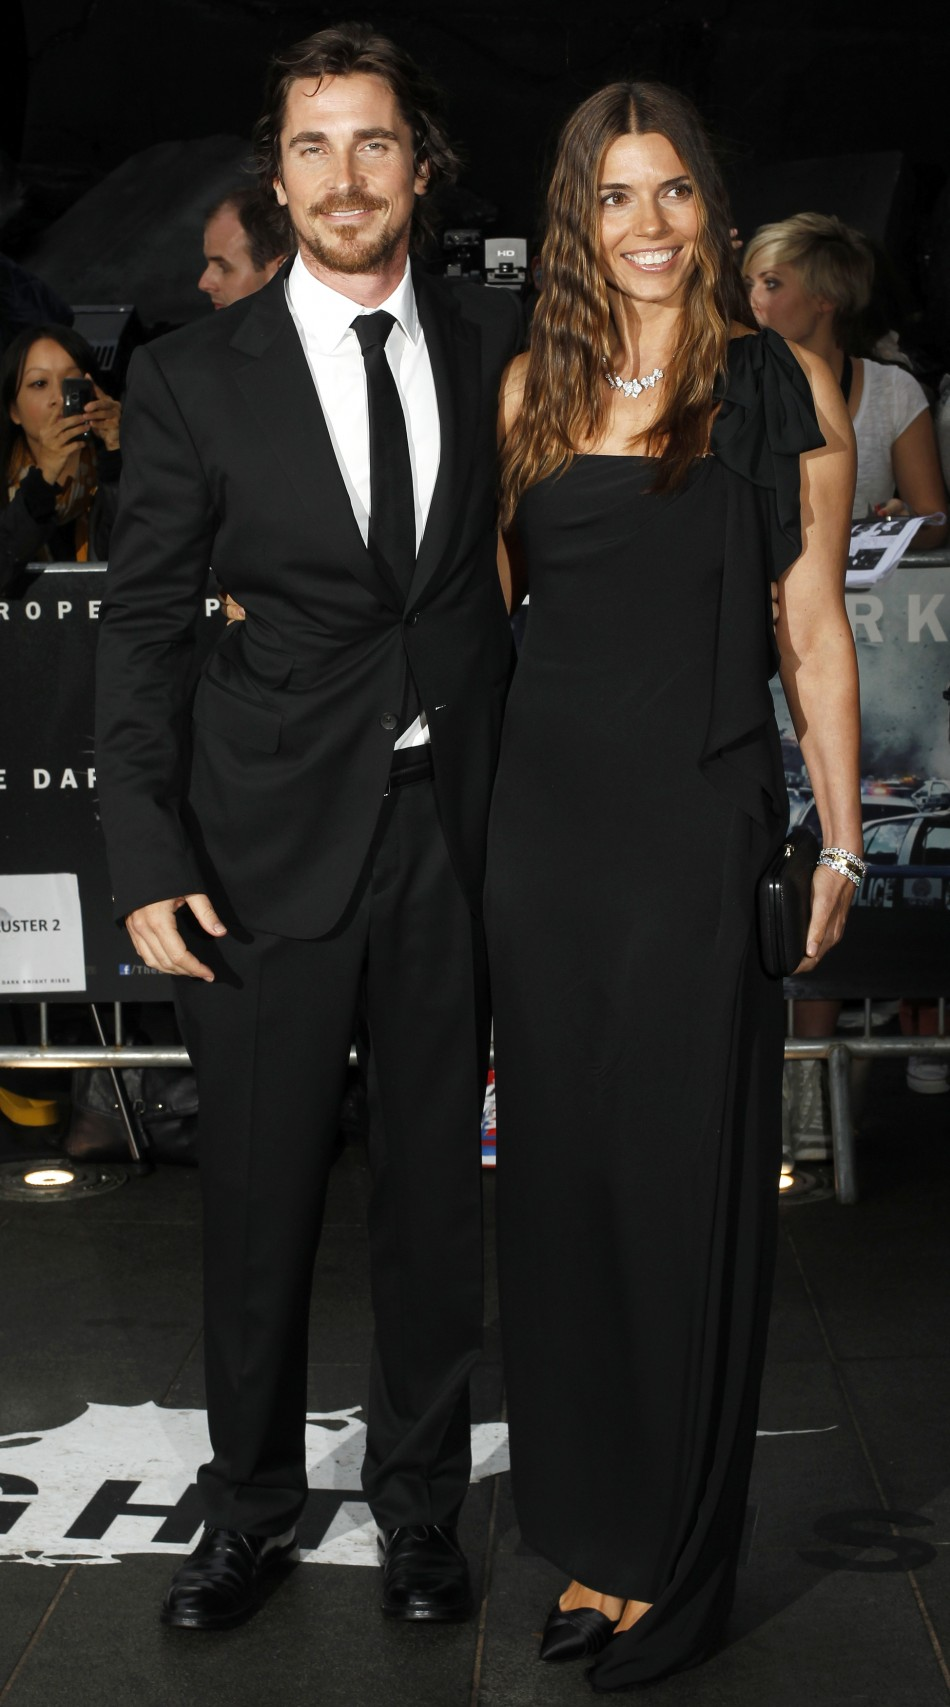 Christian Bale and wife Sandra